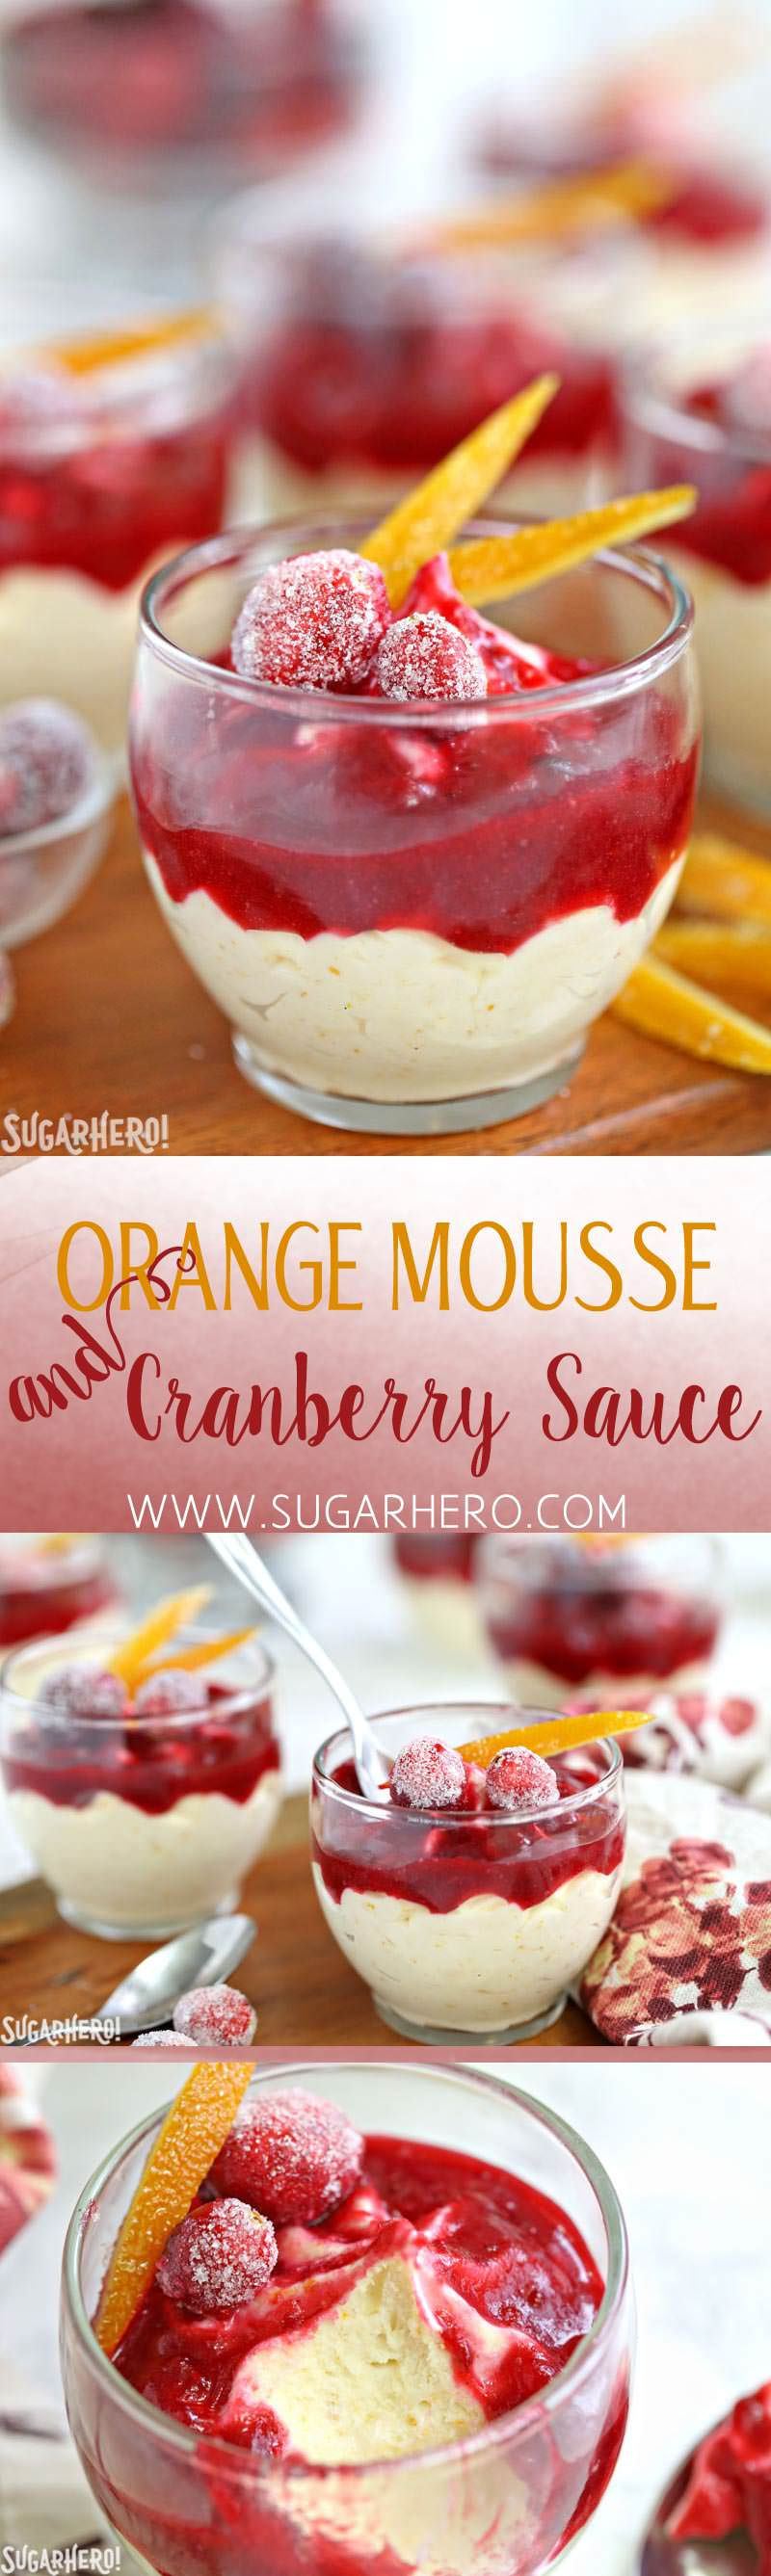 Orange Mousse with Cranberry Sauce | From SugarHero.com